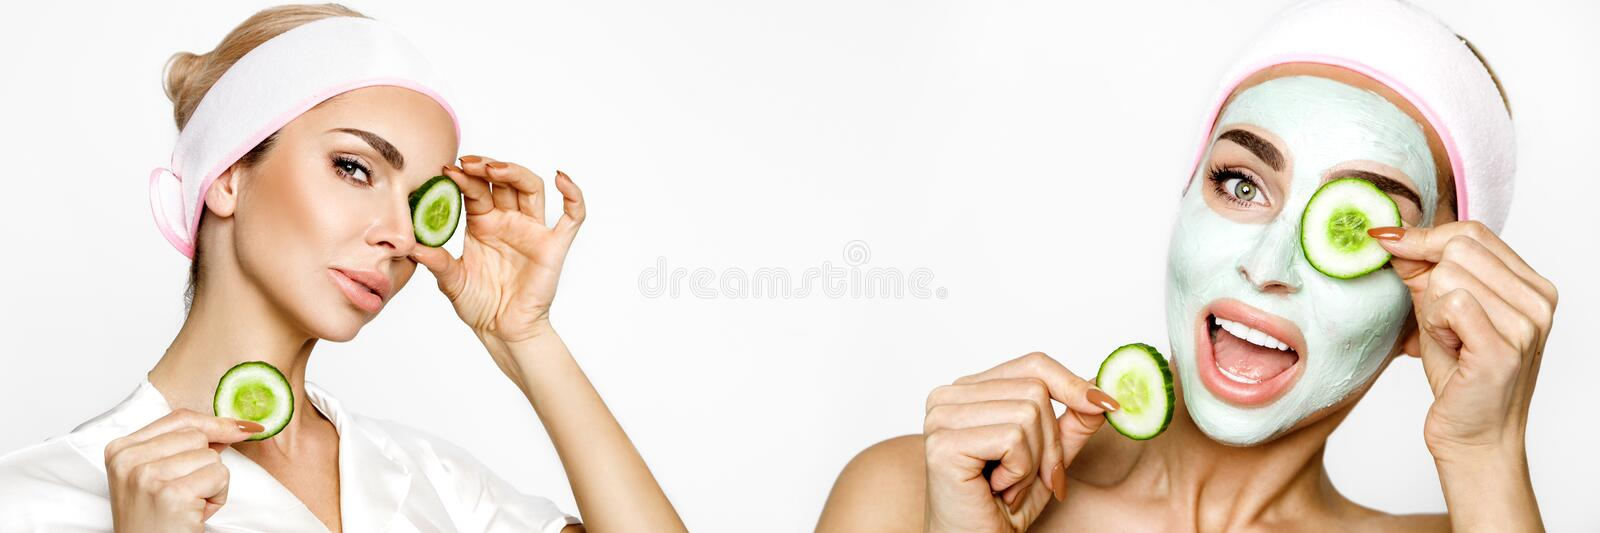 Young smiling woman with a clay mask. Photo of attractive young woman covering her eyes with cucumbers on a white background. stock photo